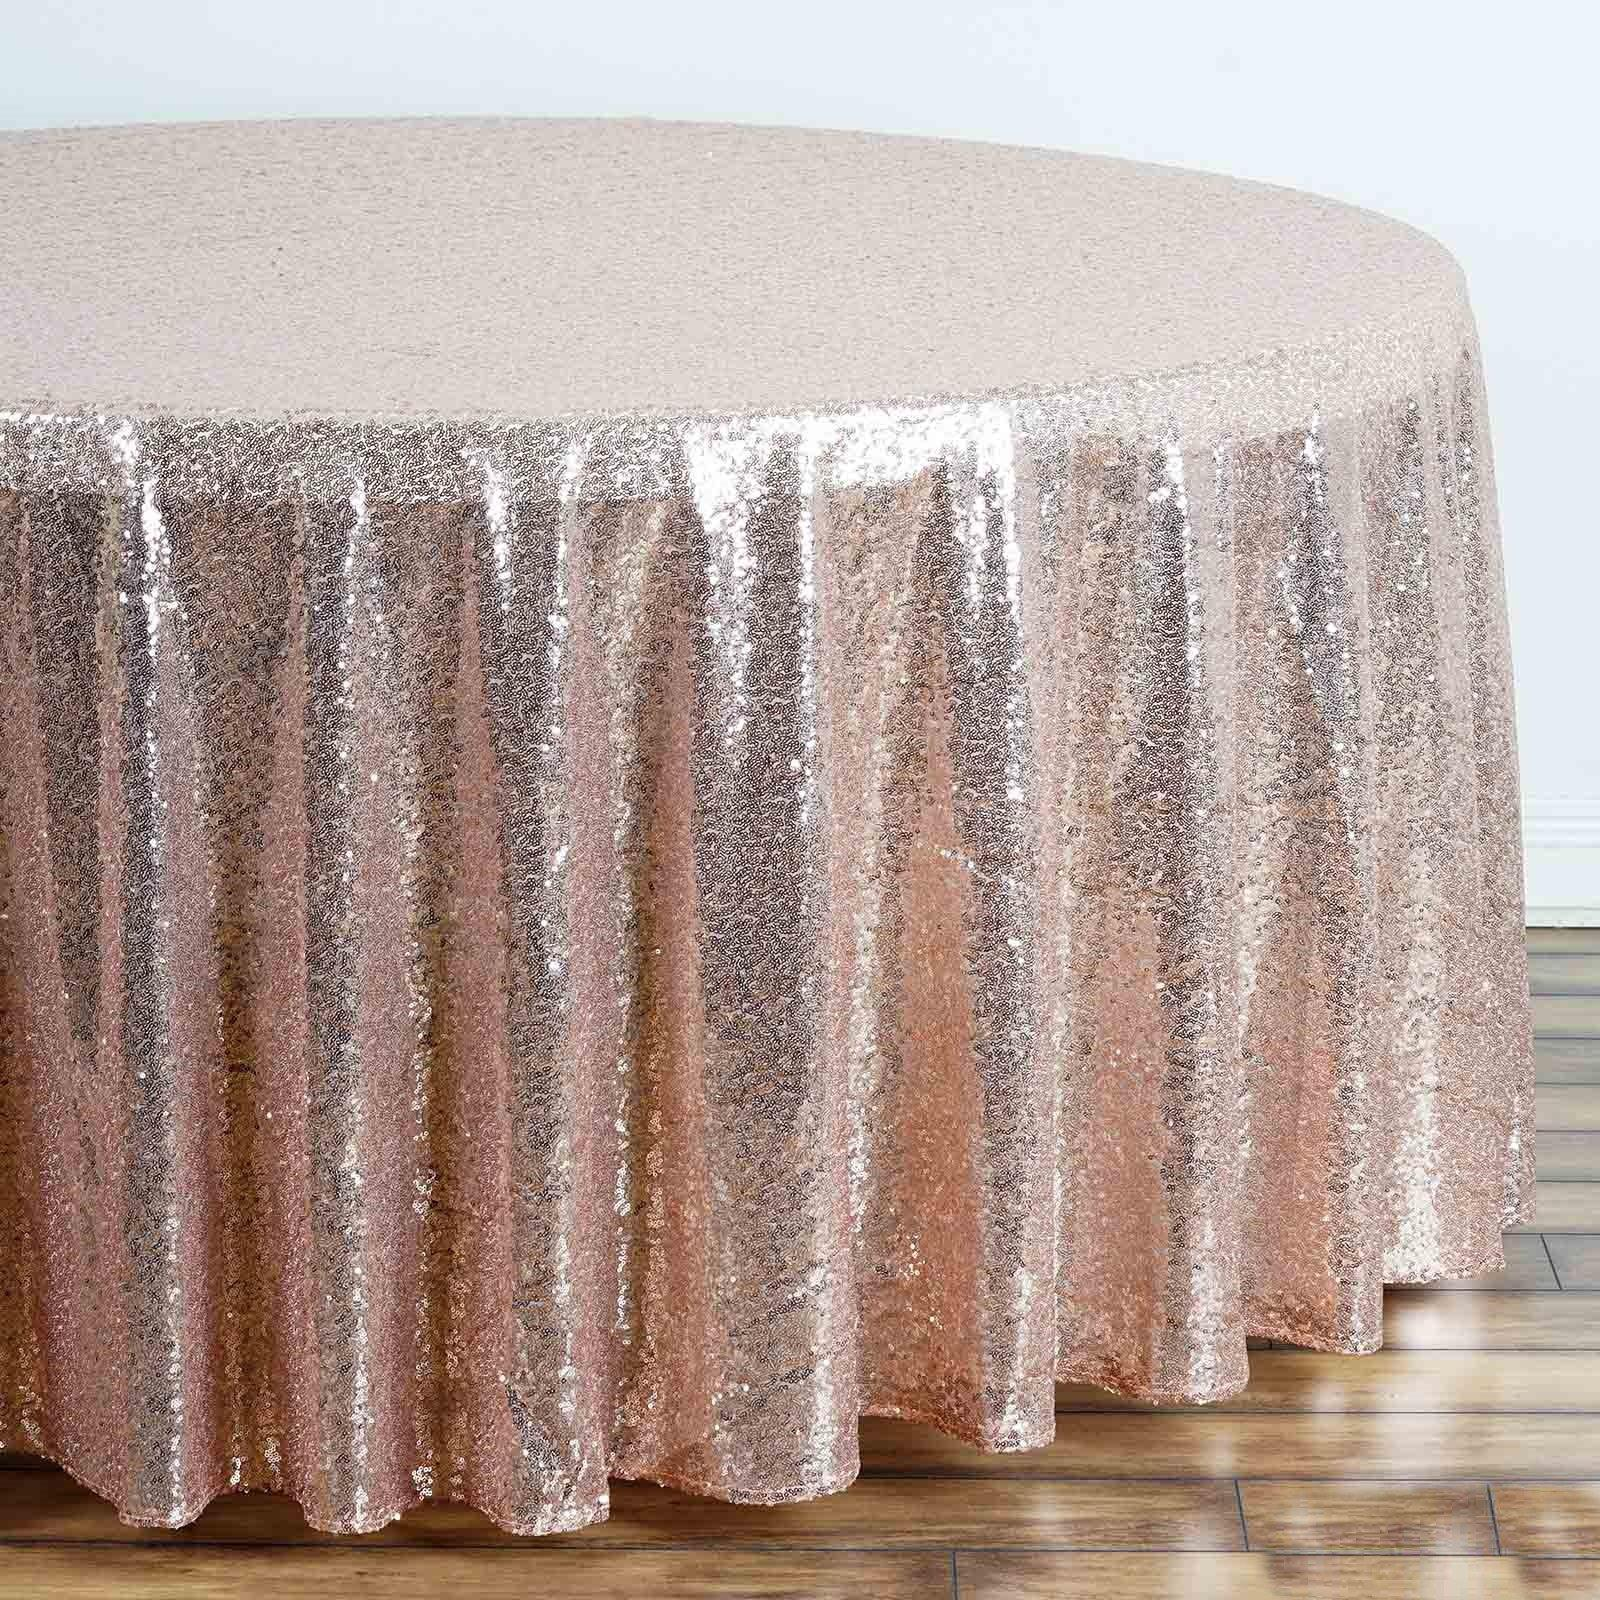 rose gold blush premium sequin round tablecloth tablecloths tab for inch accent table fall runner patterns tall nightstand small chest drawers ottawa kmart desk lamp pier one